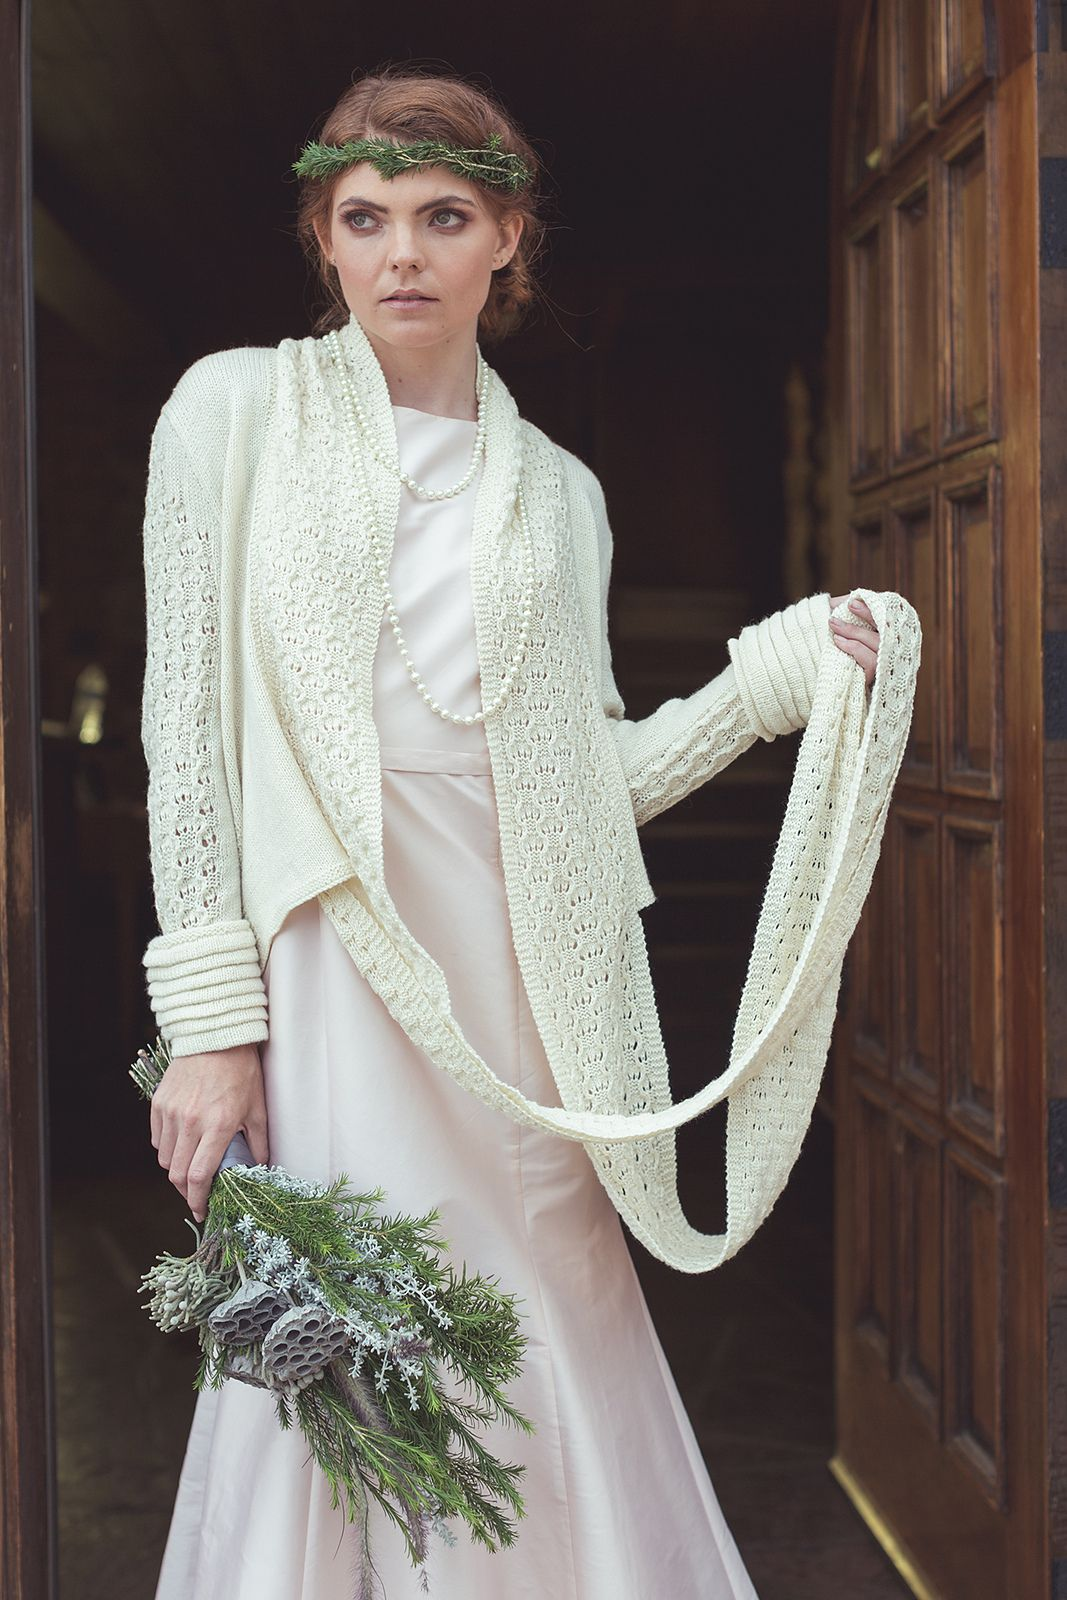 d59a3e1eac13b0 Ravelry  Juul Cardigan pattern by Linda Marveng